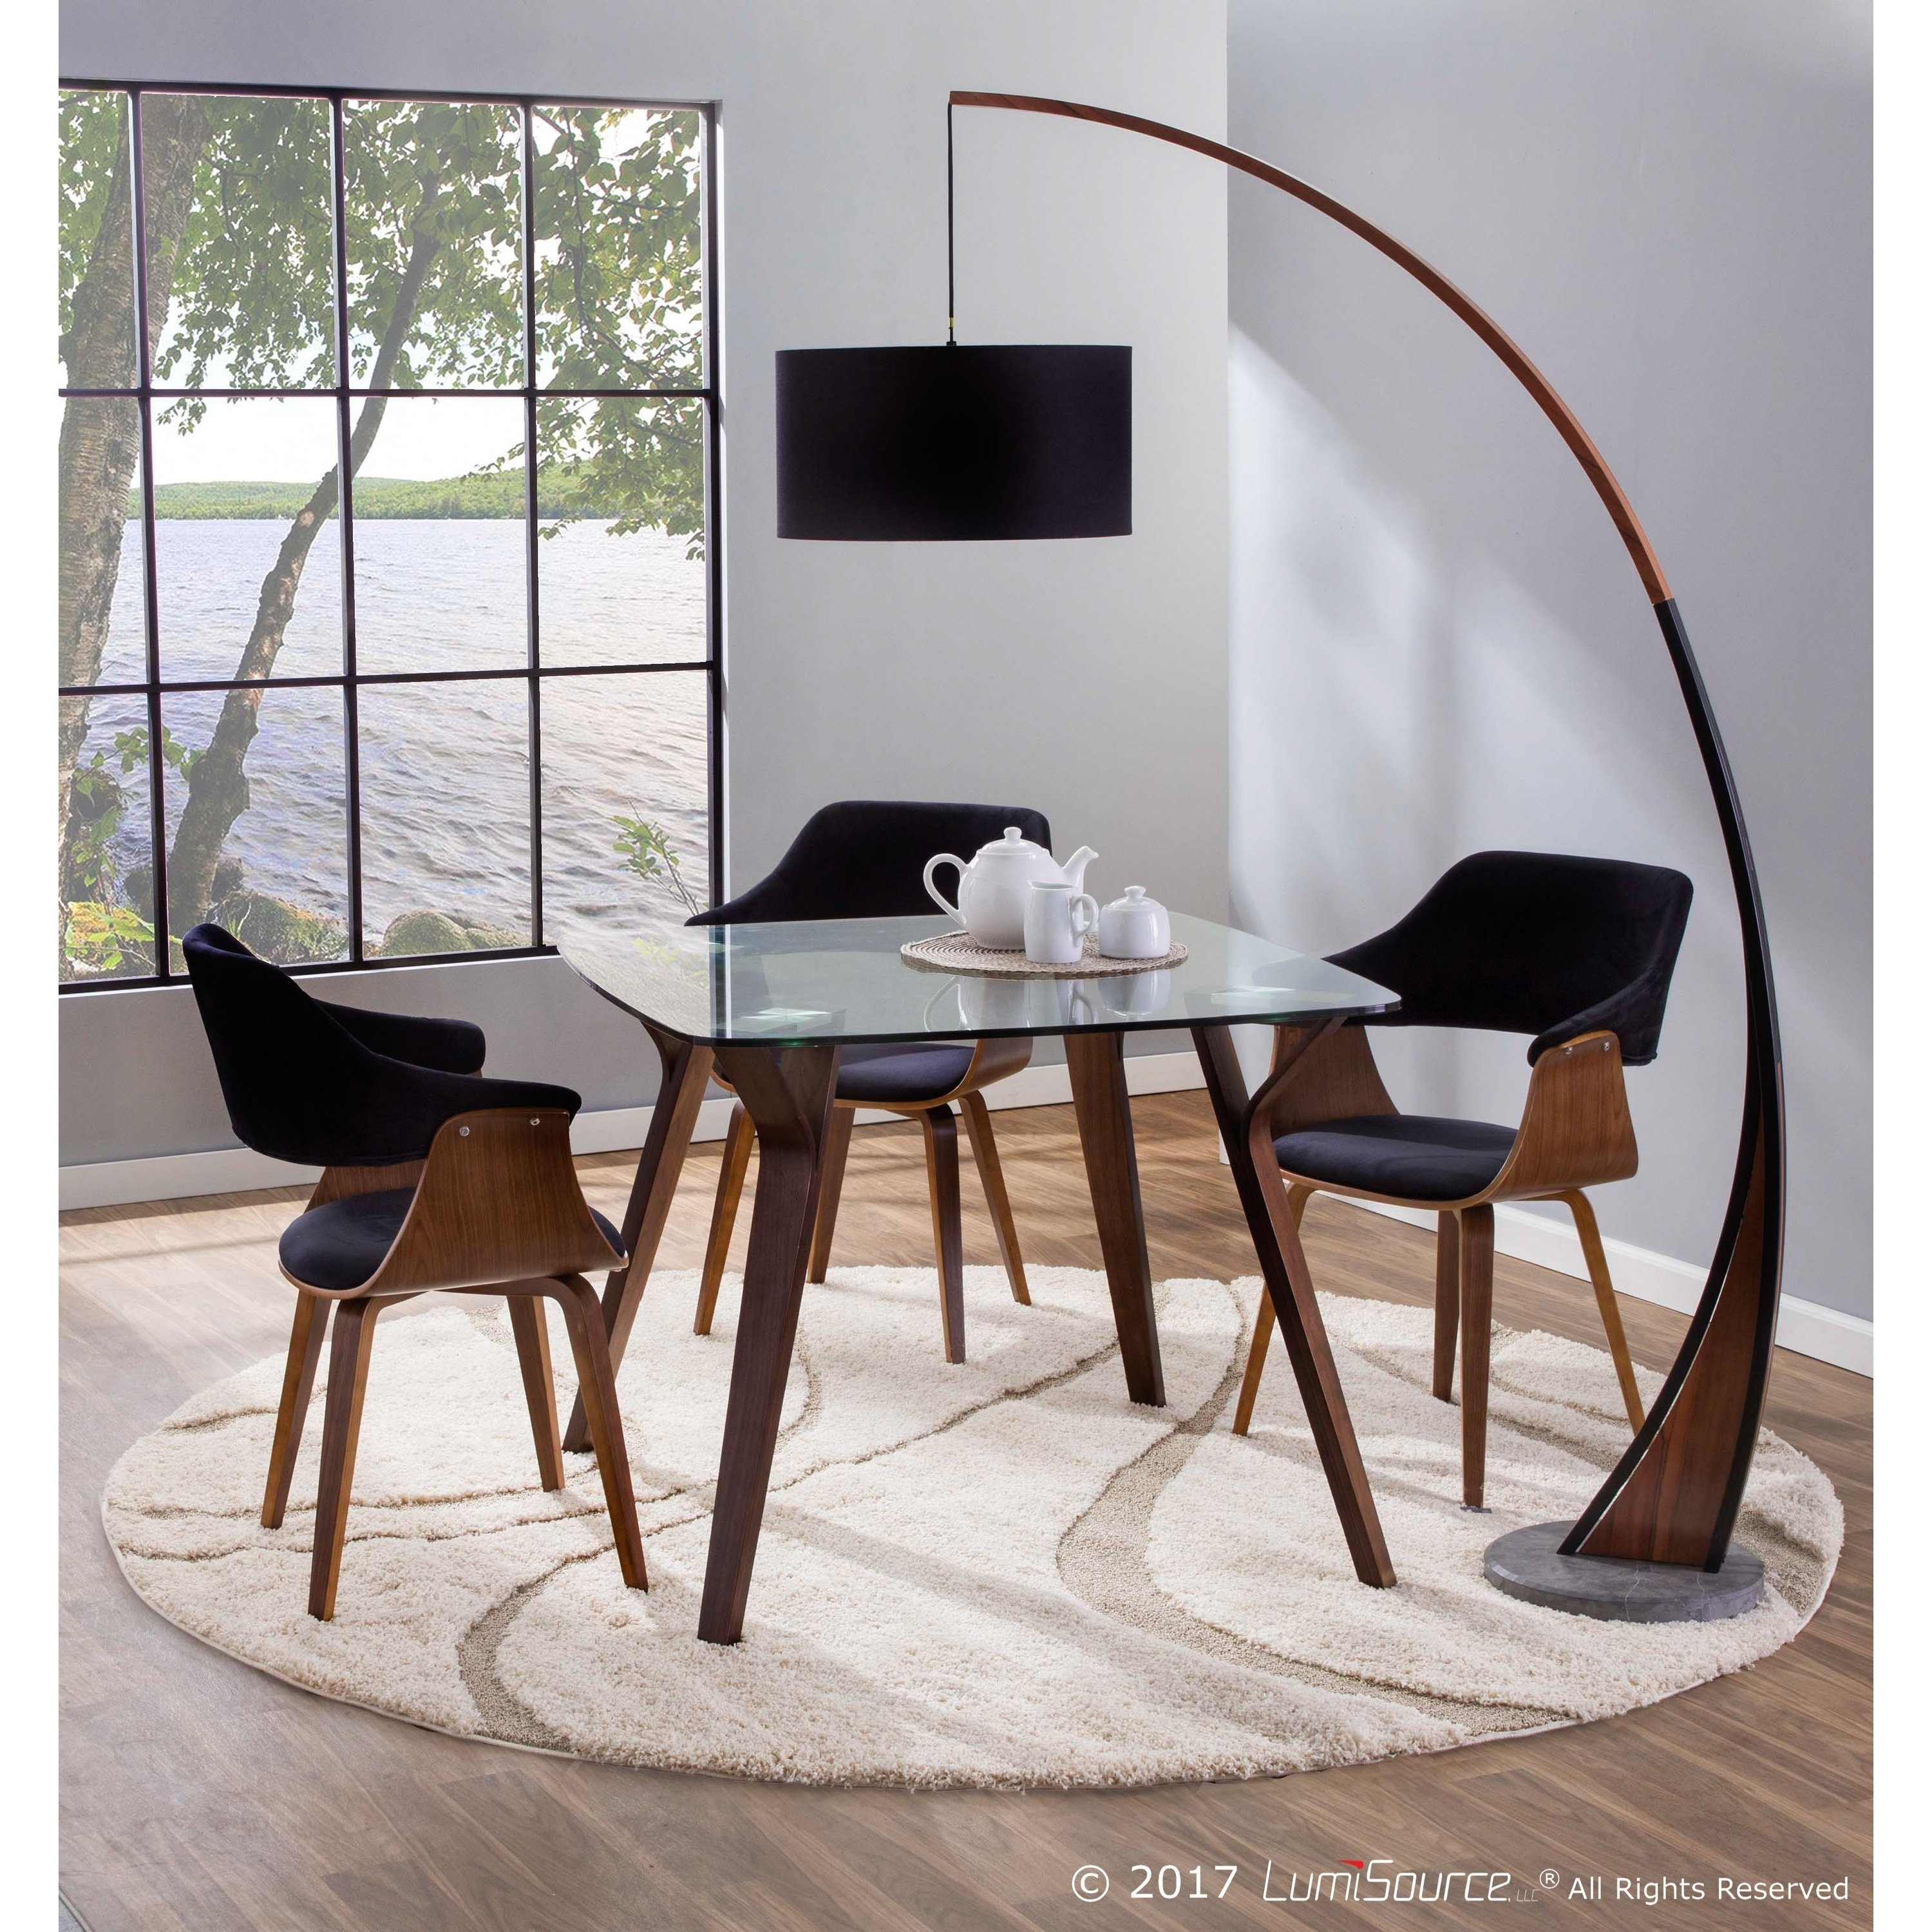 lucci mid century modern dining accent chair walnut and velvet room table with chairs free shipping today west elm marble wide door threshold hampton bay patio furniture